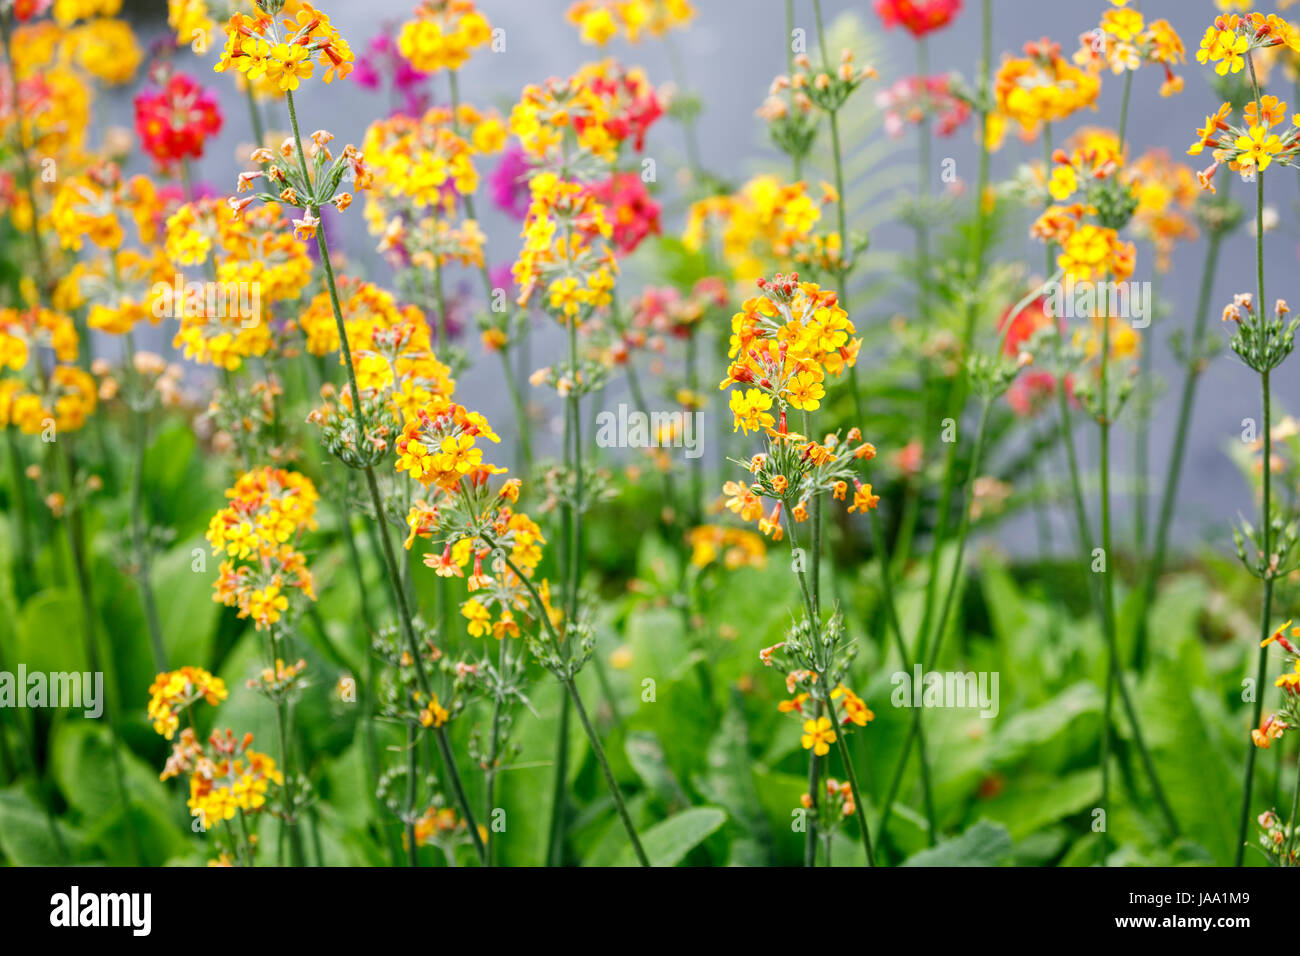 Colourful candlestick (candelabra) primulas growing, flowering in late spring early summer, RHS gardens, Wisley, - Stock Image